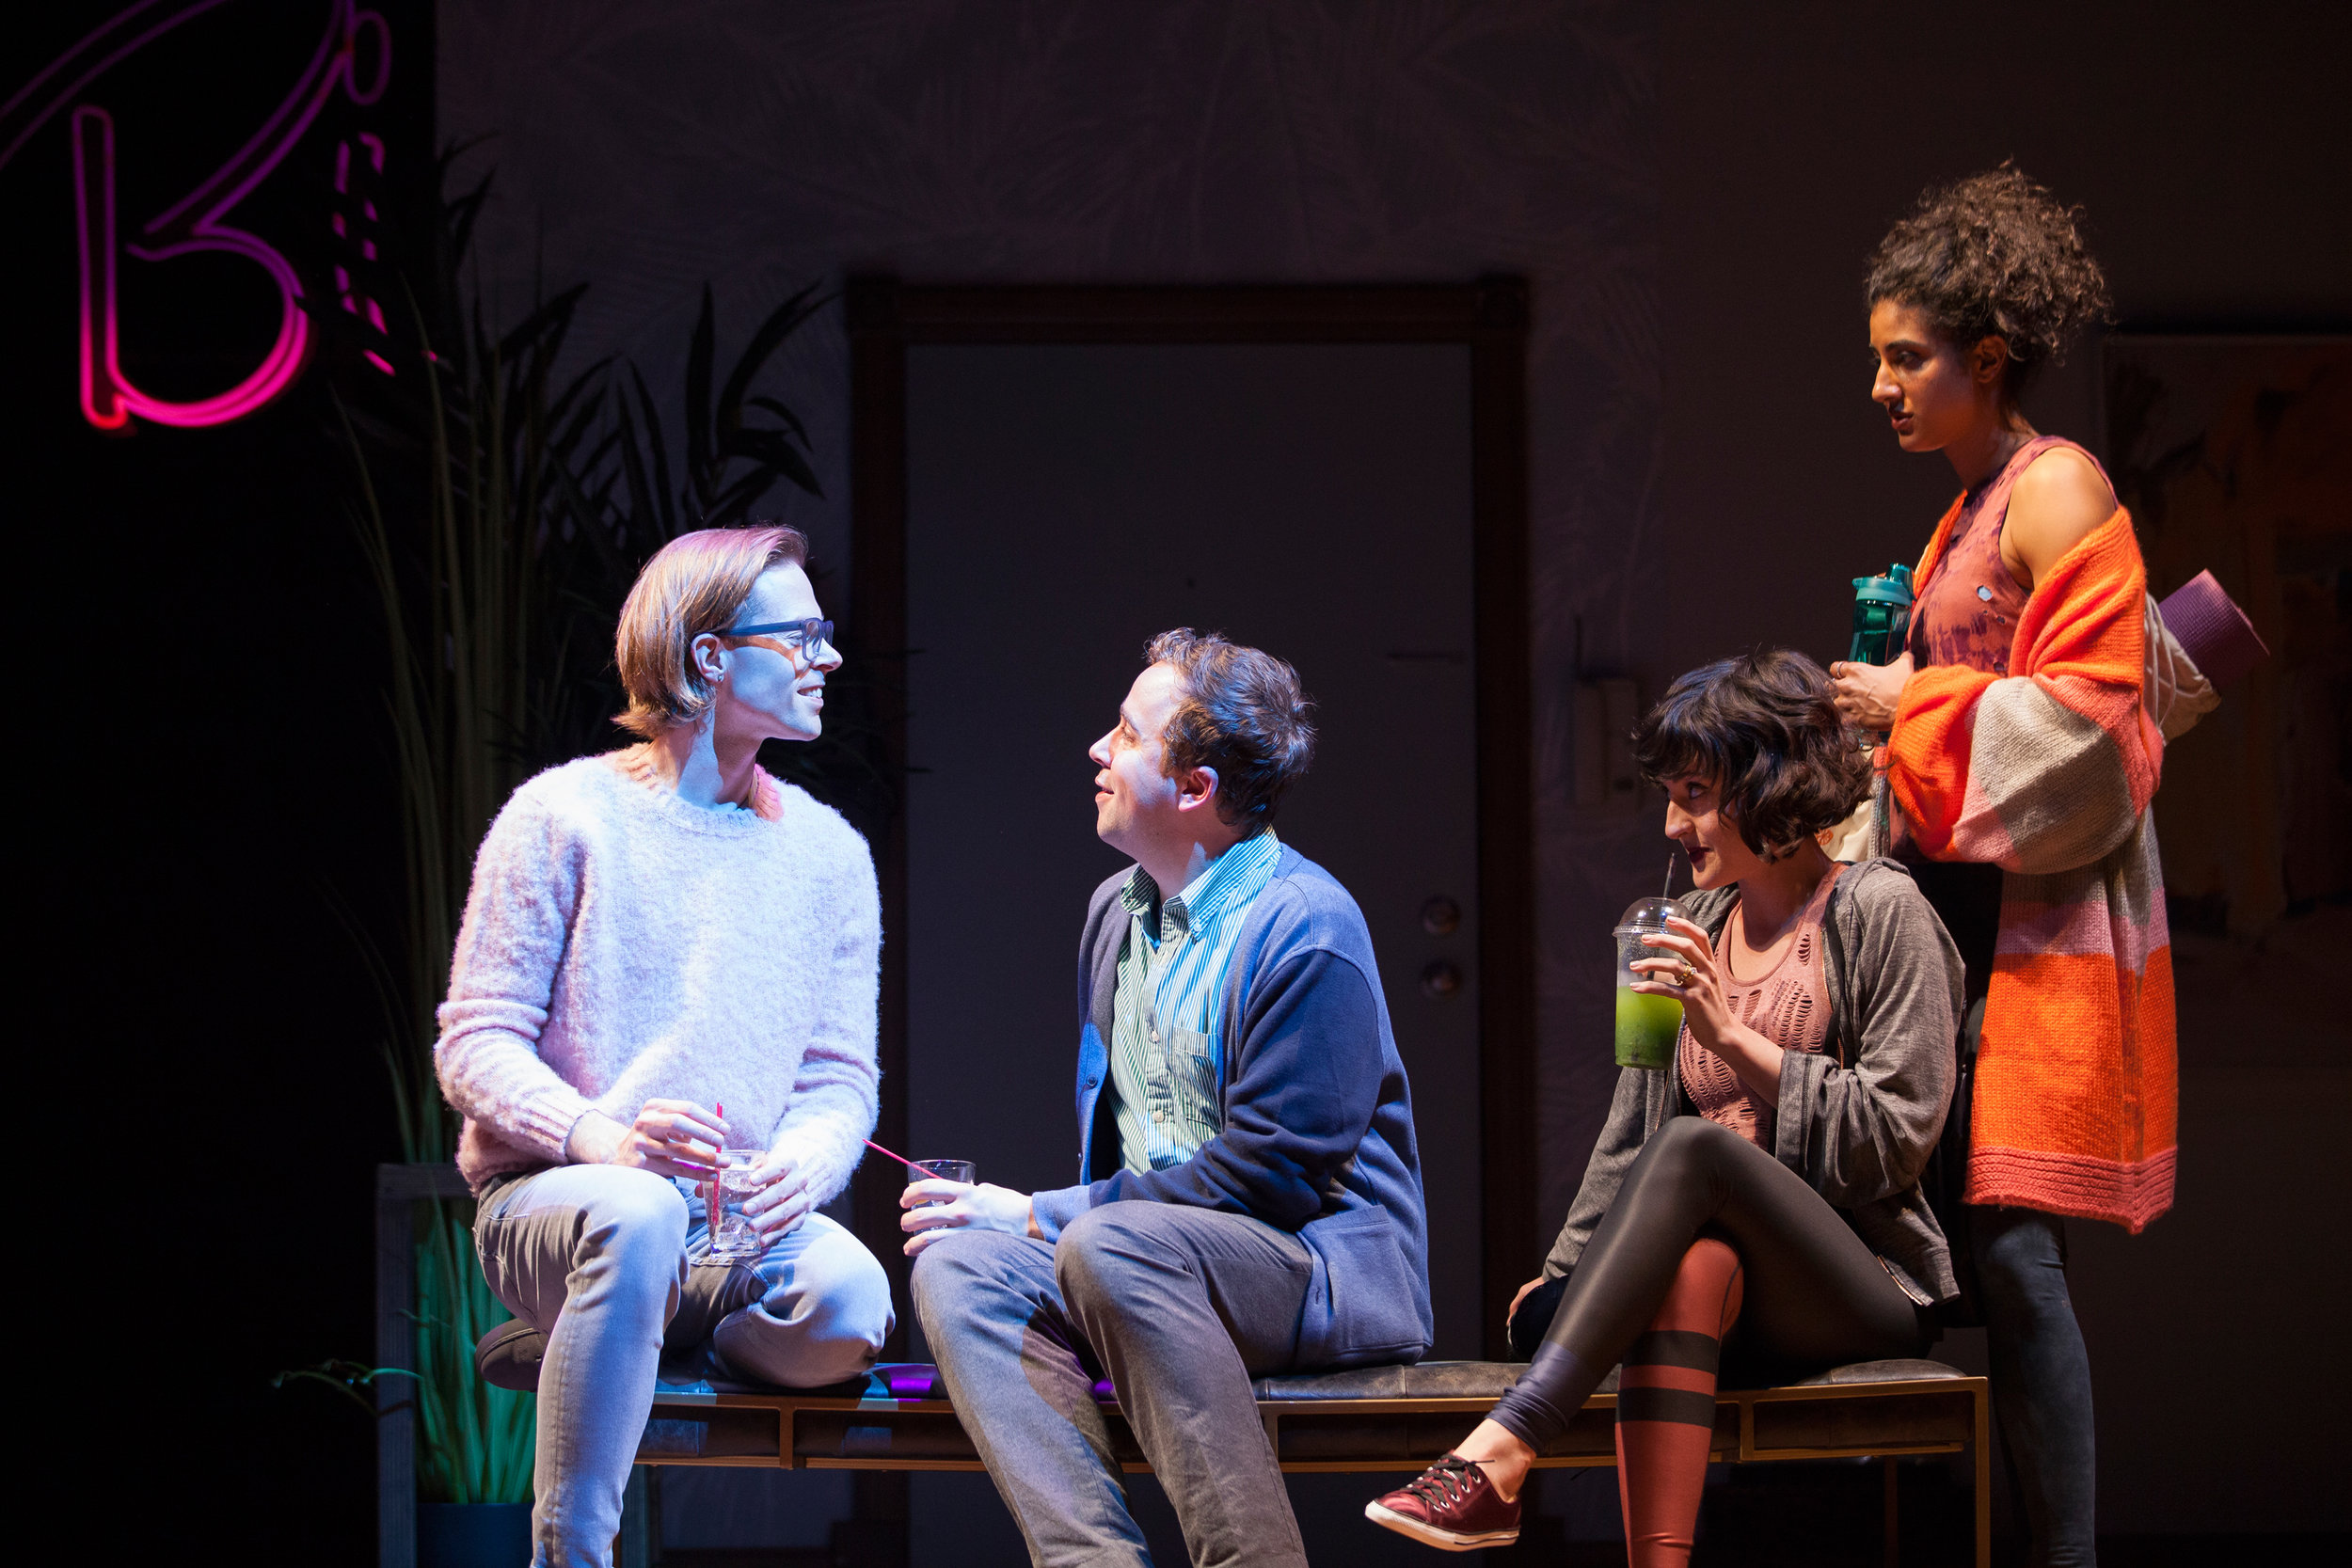 Preston Martin, Will Von Vogt, Keilly McQuail and Vella Lovell star in the Geffen Playhouse's production of Significant Other. Photo by Chris Whitaker.